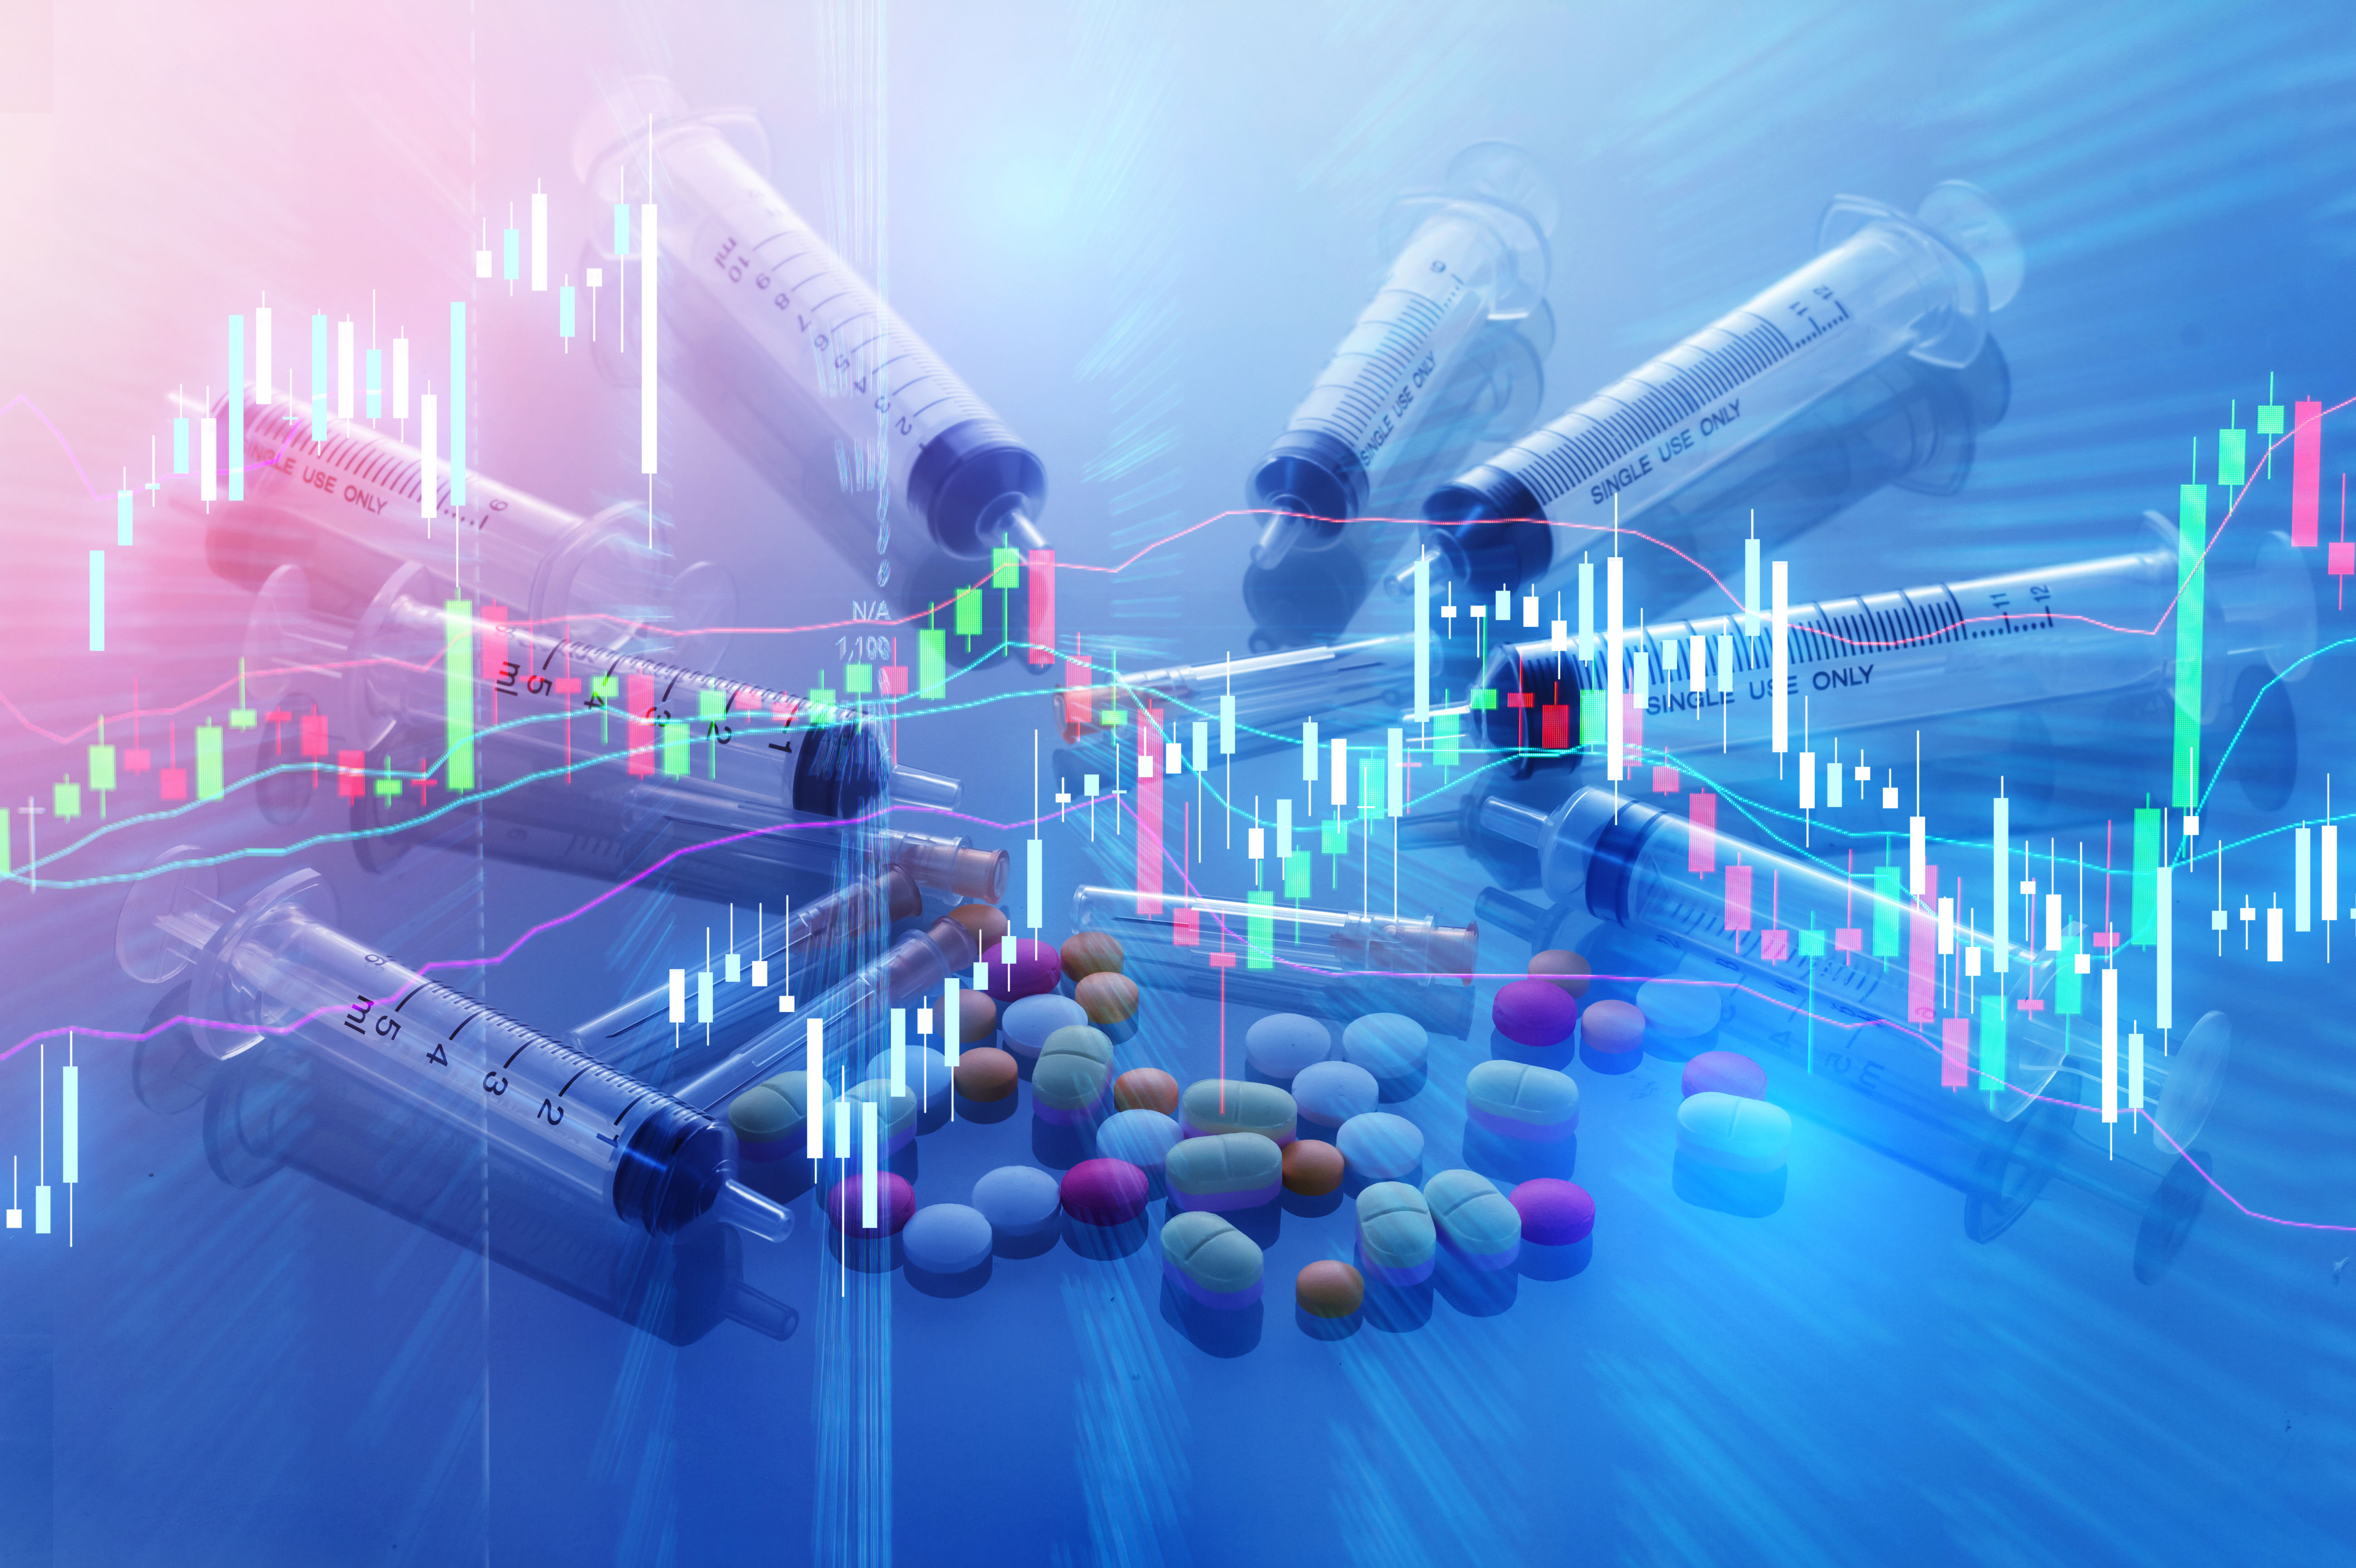 Outlook for Biopharma M&A Remains Bullish into 2019